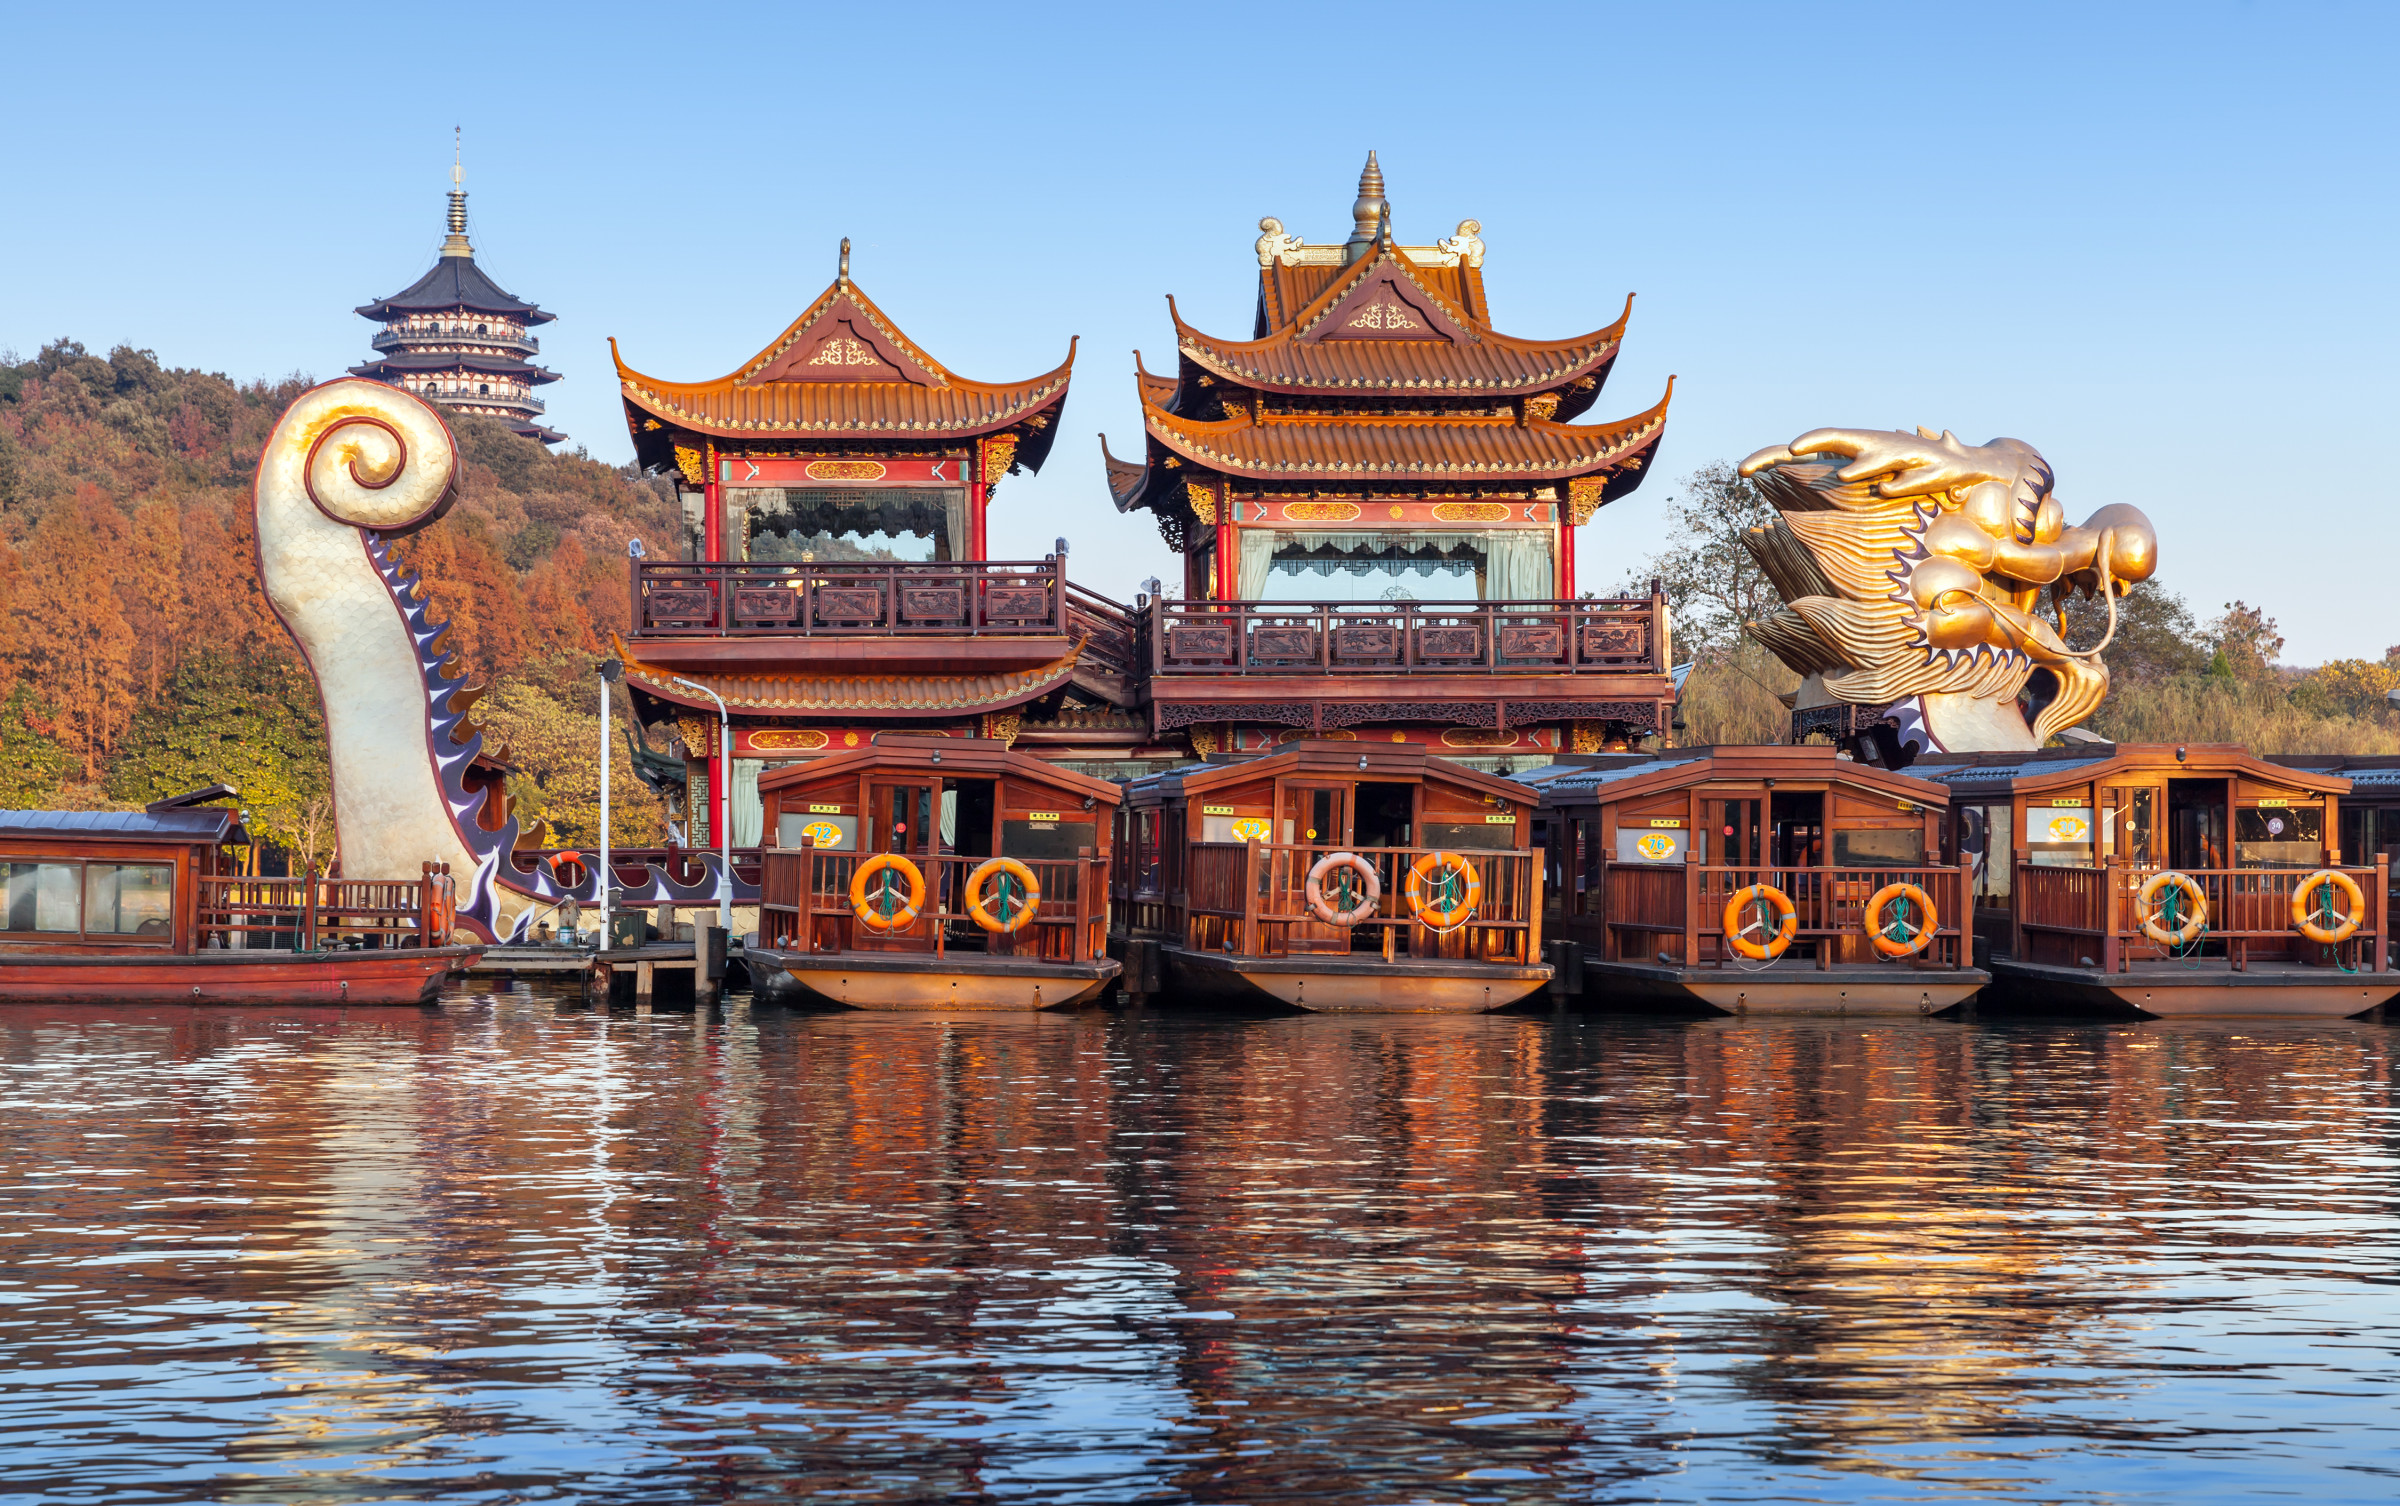 Hangzhou China - December 5 2014: Traditional Chinese wooden recreation boats and Dragon ship are moored on the West Lake. Famous park in Hangzhou city center China